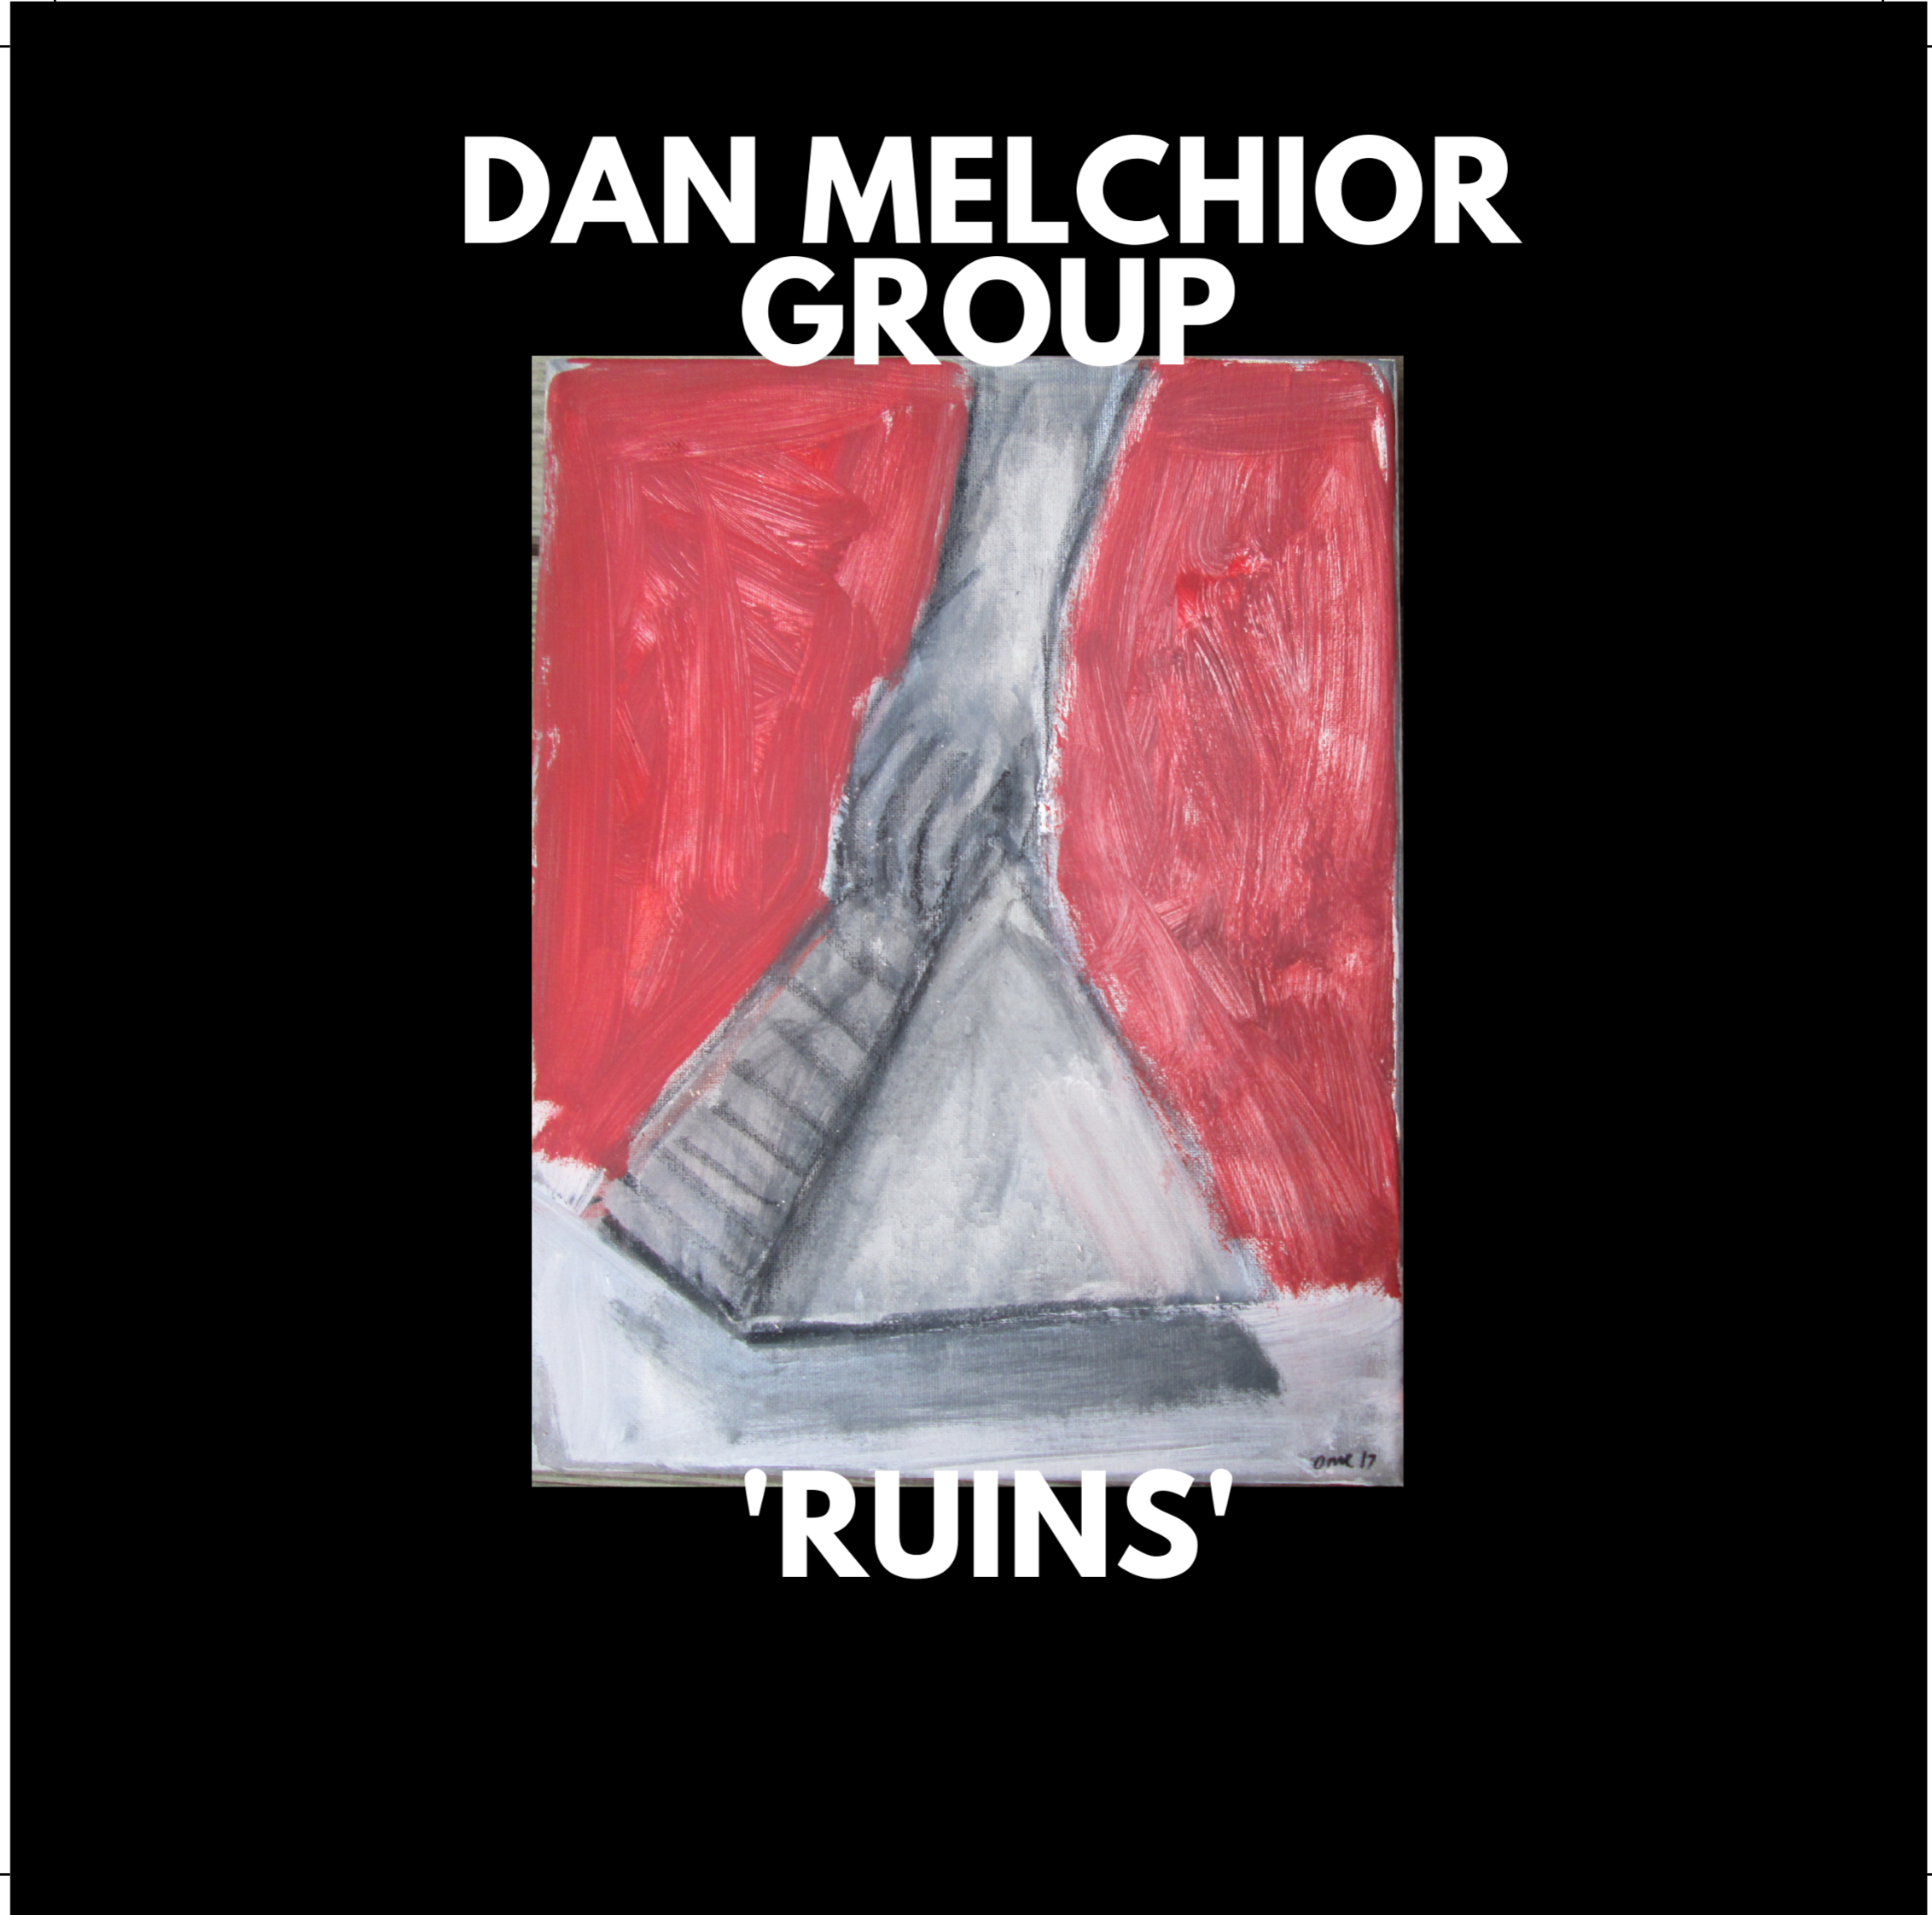 Dan Melchior Group - Ruins 2xLP - OUT OCT 25th! Dan backed by 2/3 of Bloody Show!